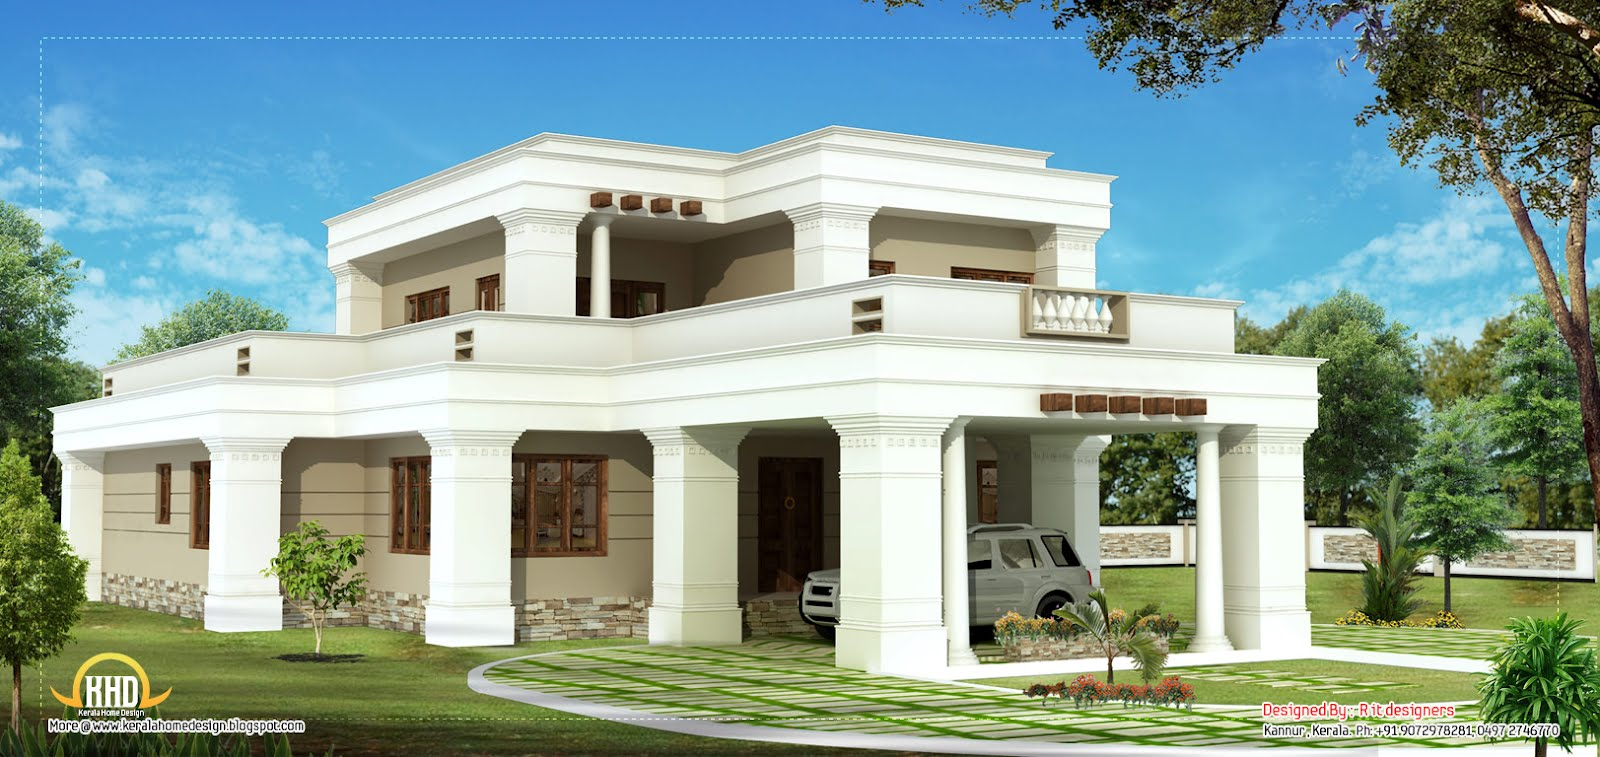 Double story square home design 2615 sq ft kerala for Kerala home designs photos in double floor